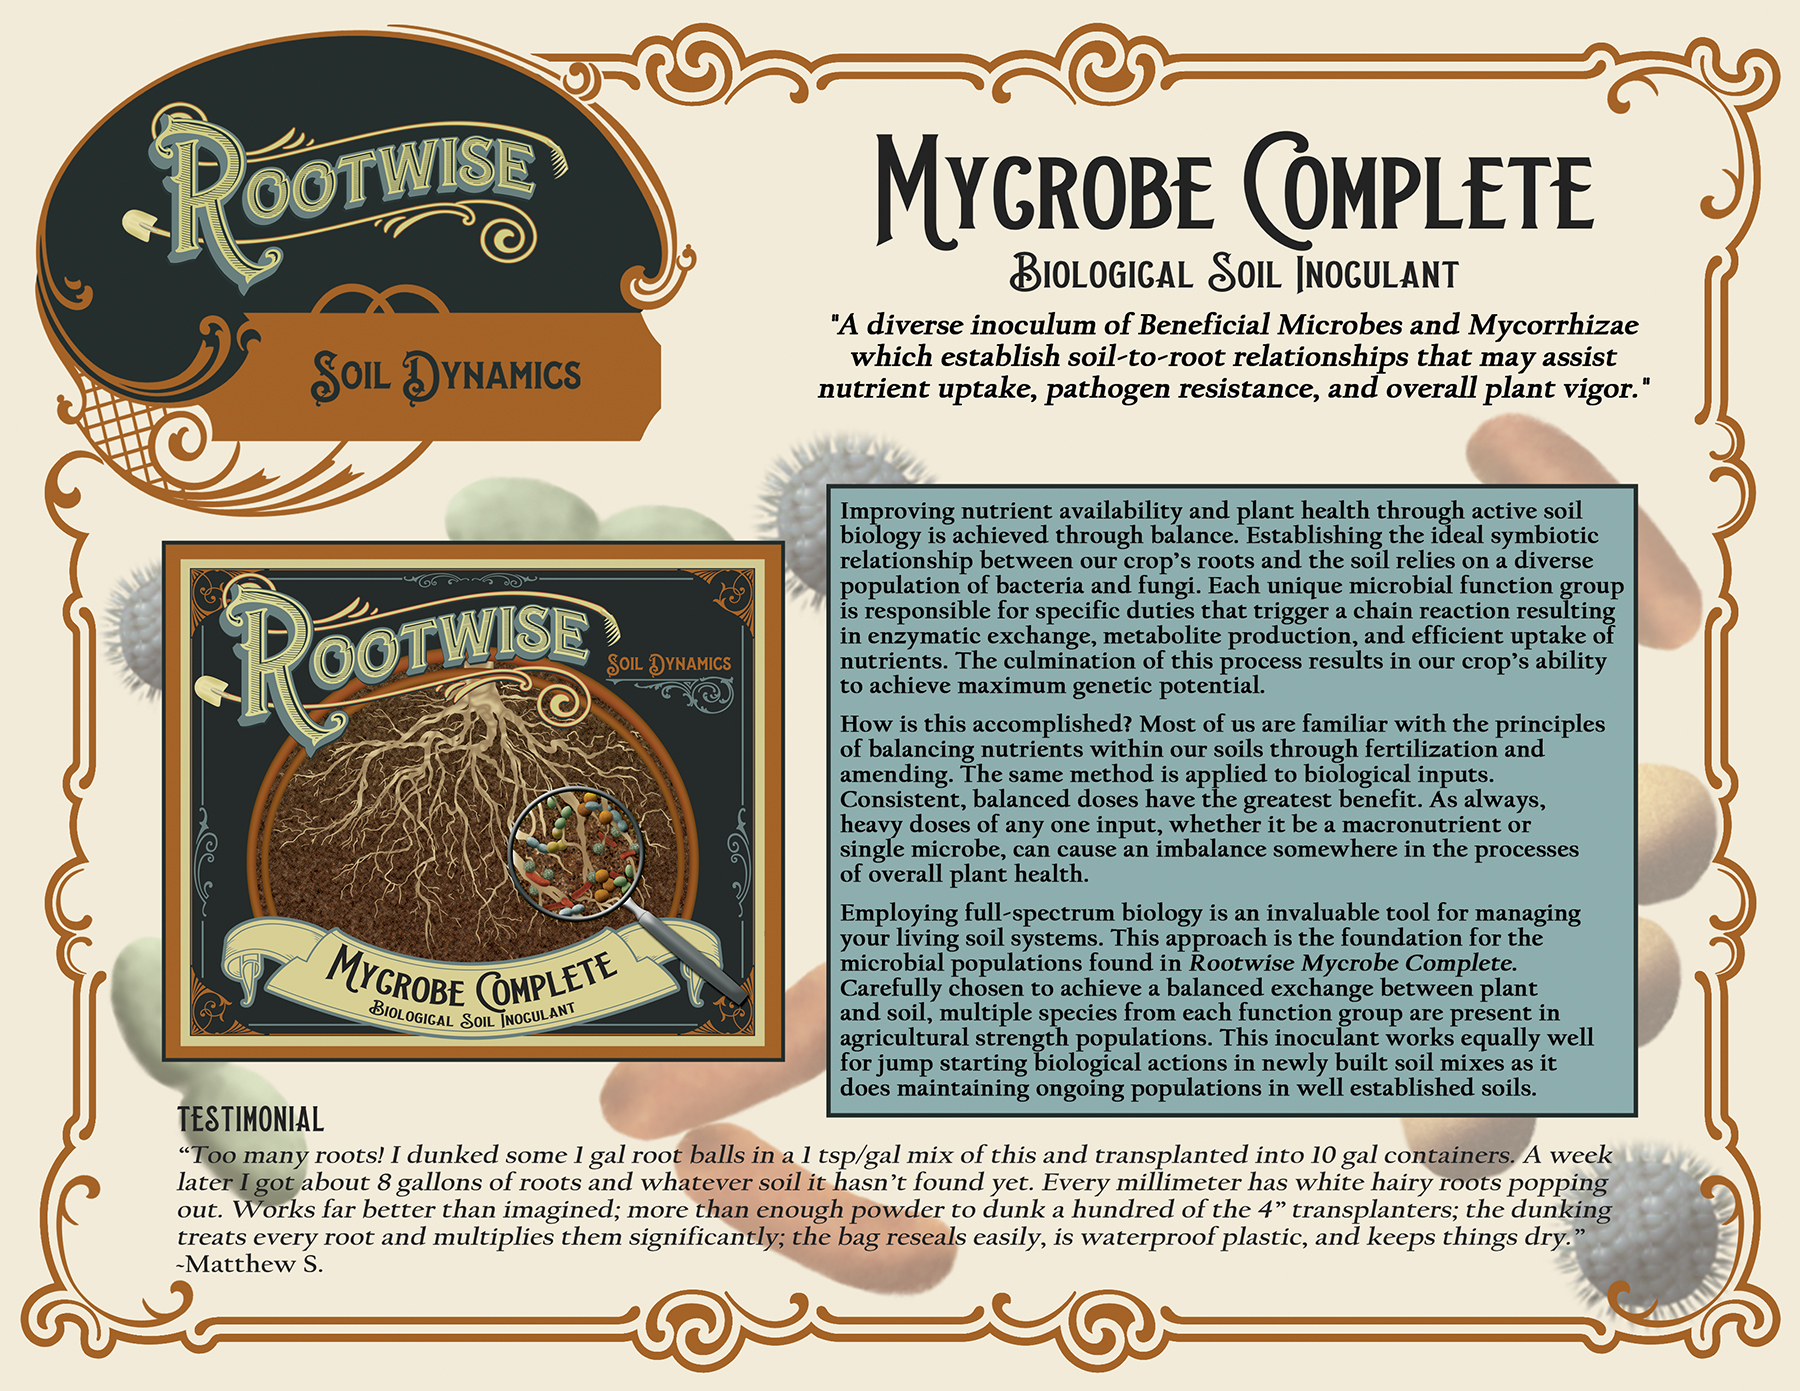 Rootwise Mycrobe Complete